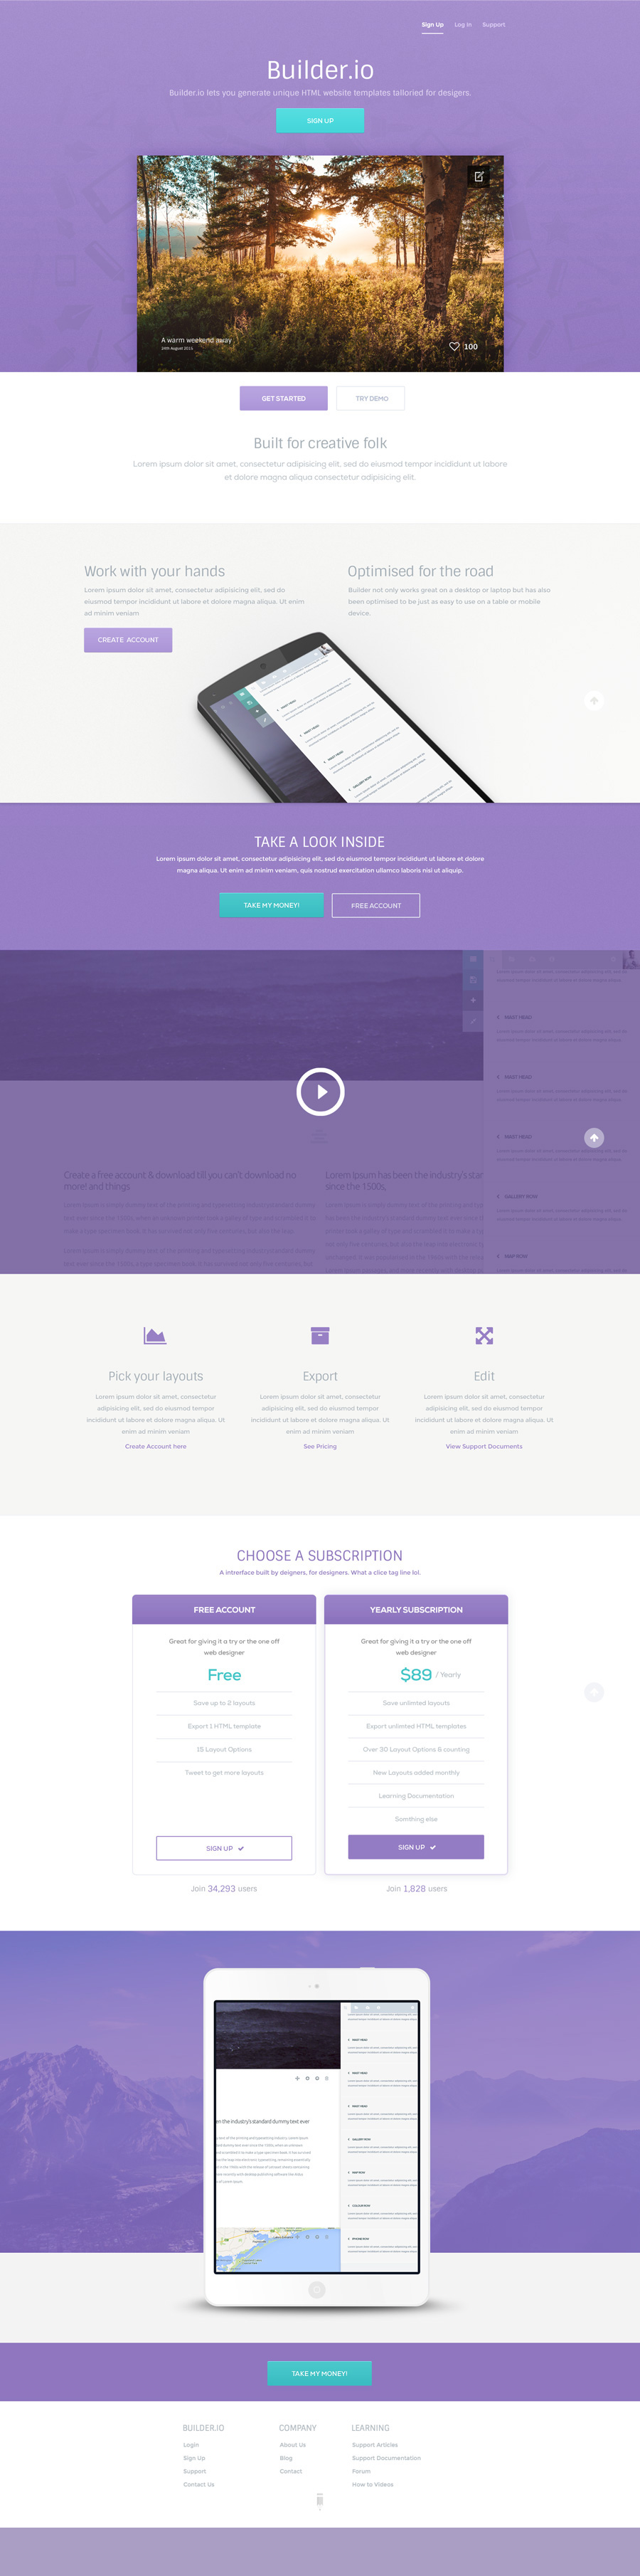 Builder A Free Vibrant Web App Psd Template Web App Design Business Card Template Business Card Templates Download